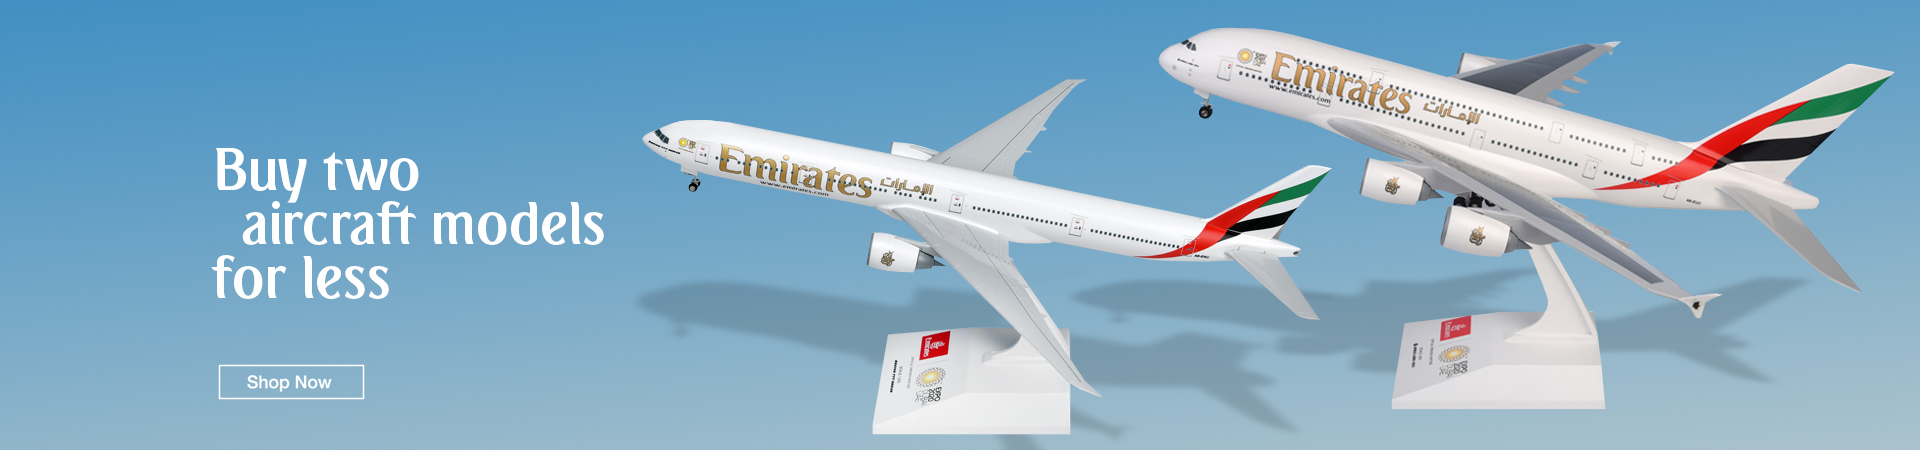 https://www.emirates.store/eos-store/aircraft-models/bundle-deals/c-24/c-207